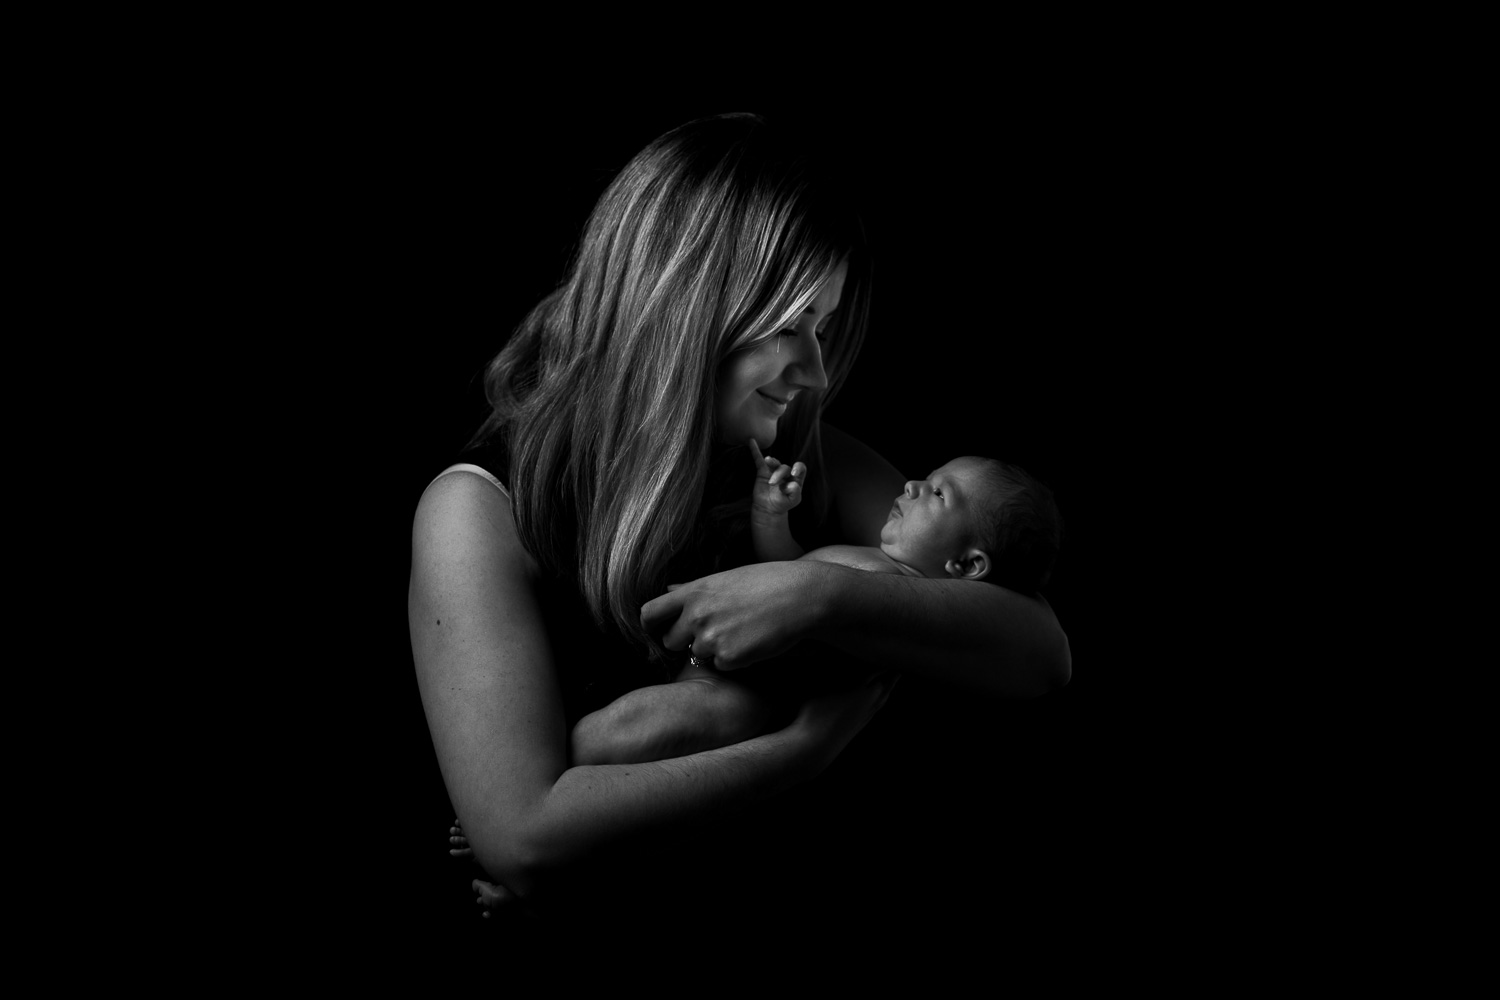 photograph of a mother and her newborn baby